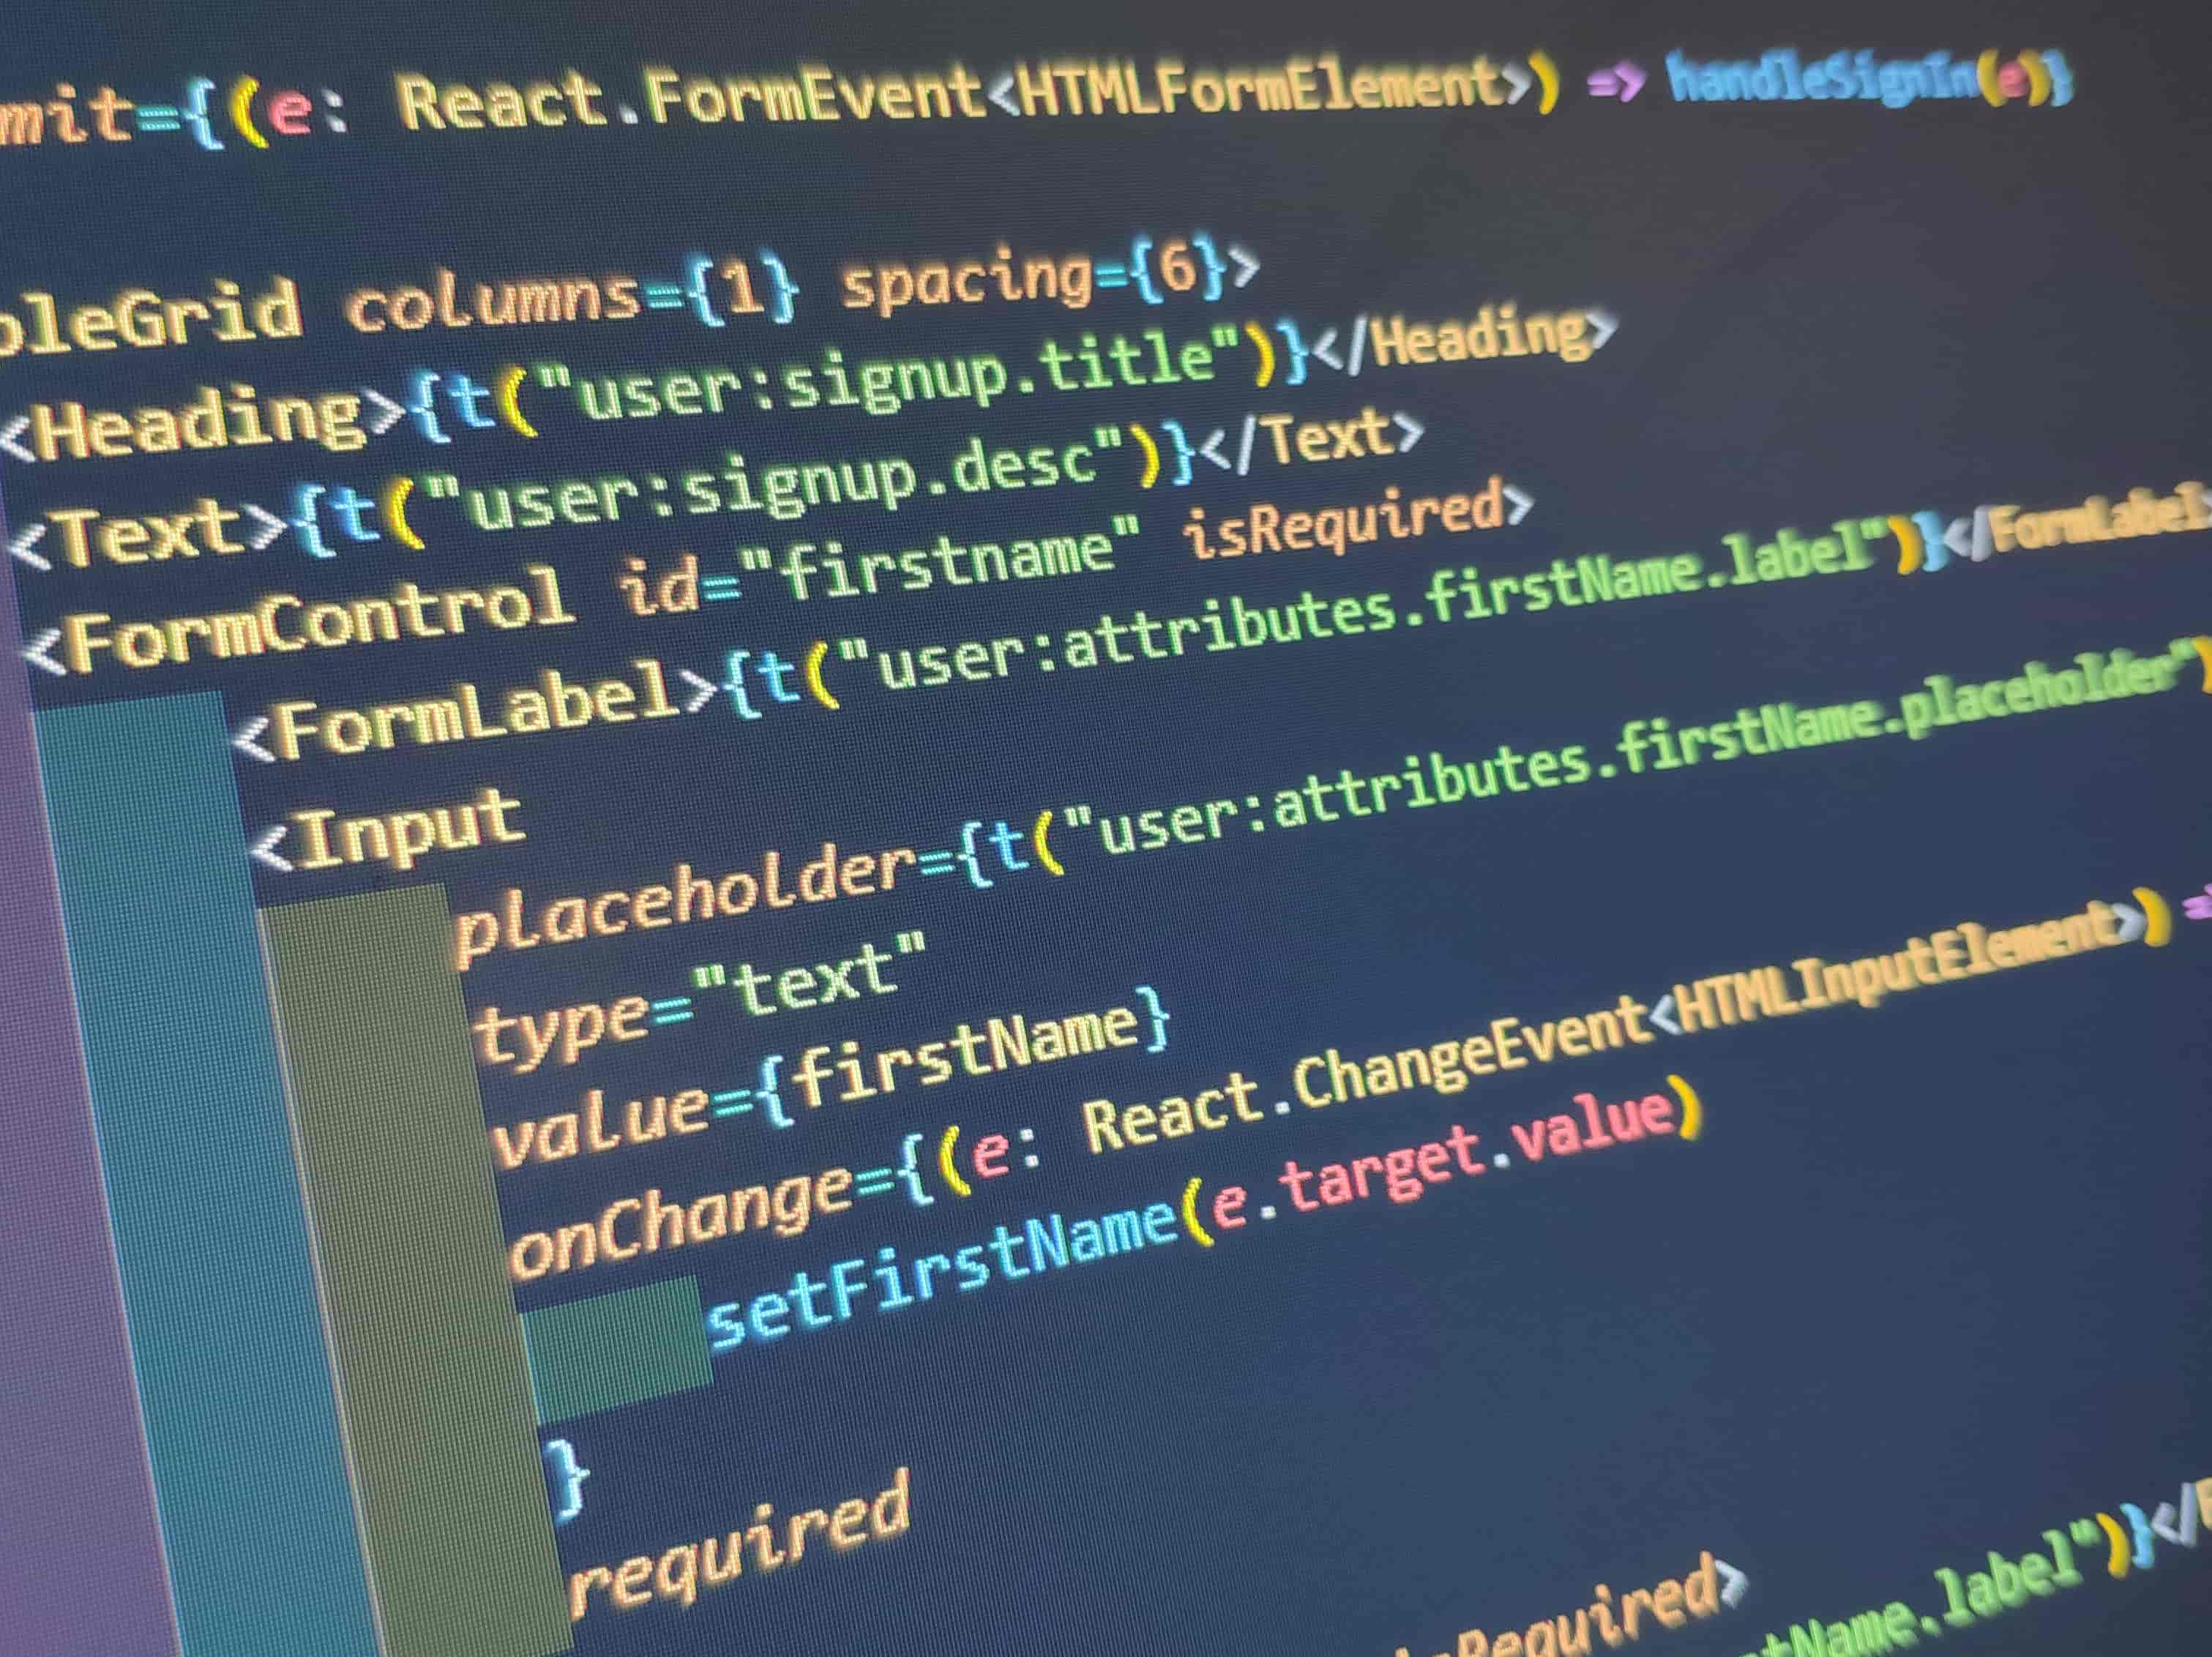 QUIKK Software Minden: Code, Softwareentwicklung, mobile Apps und Webdesign